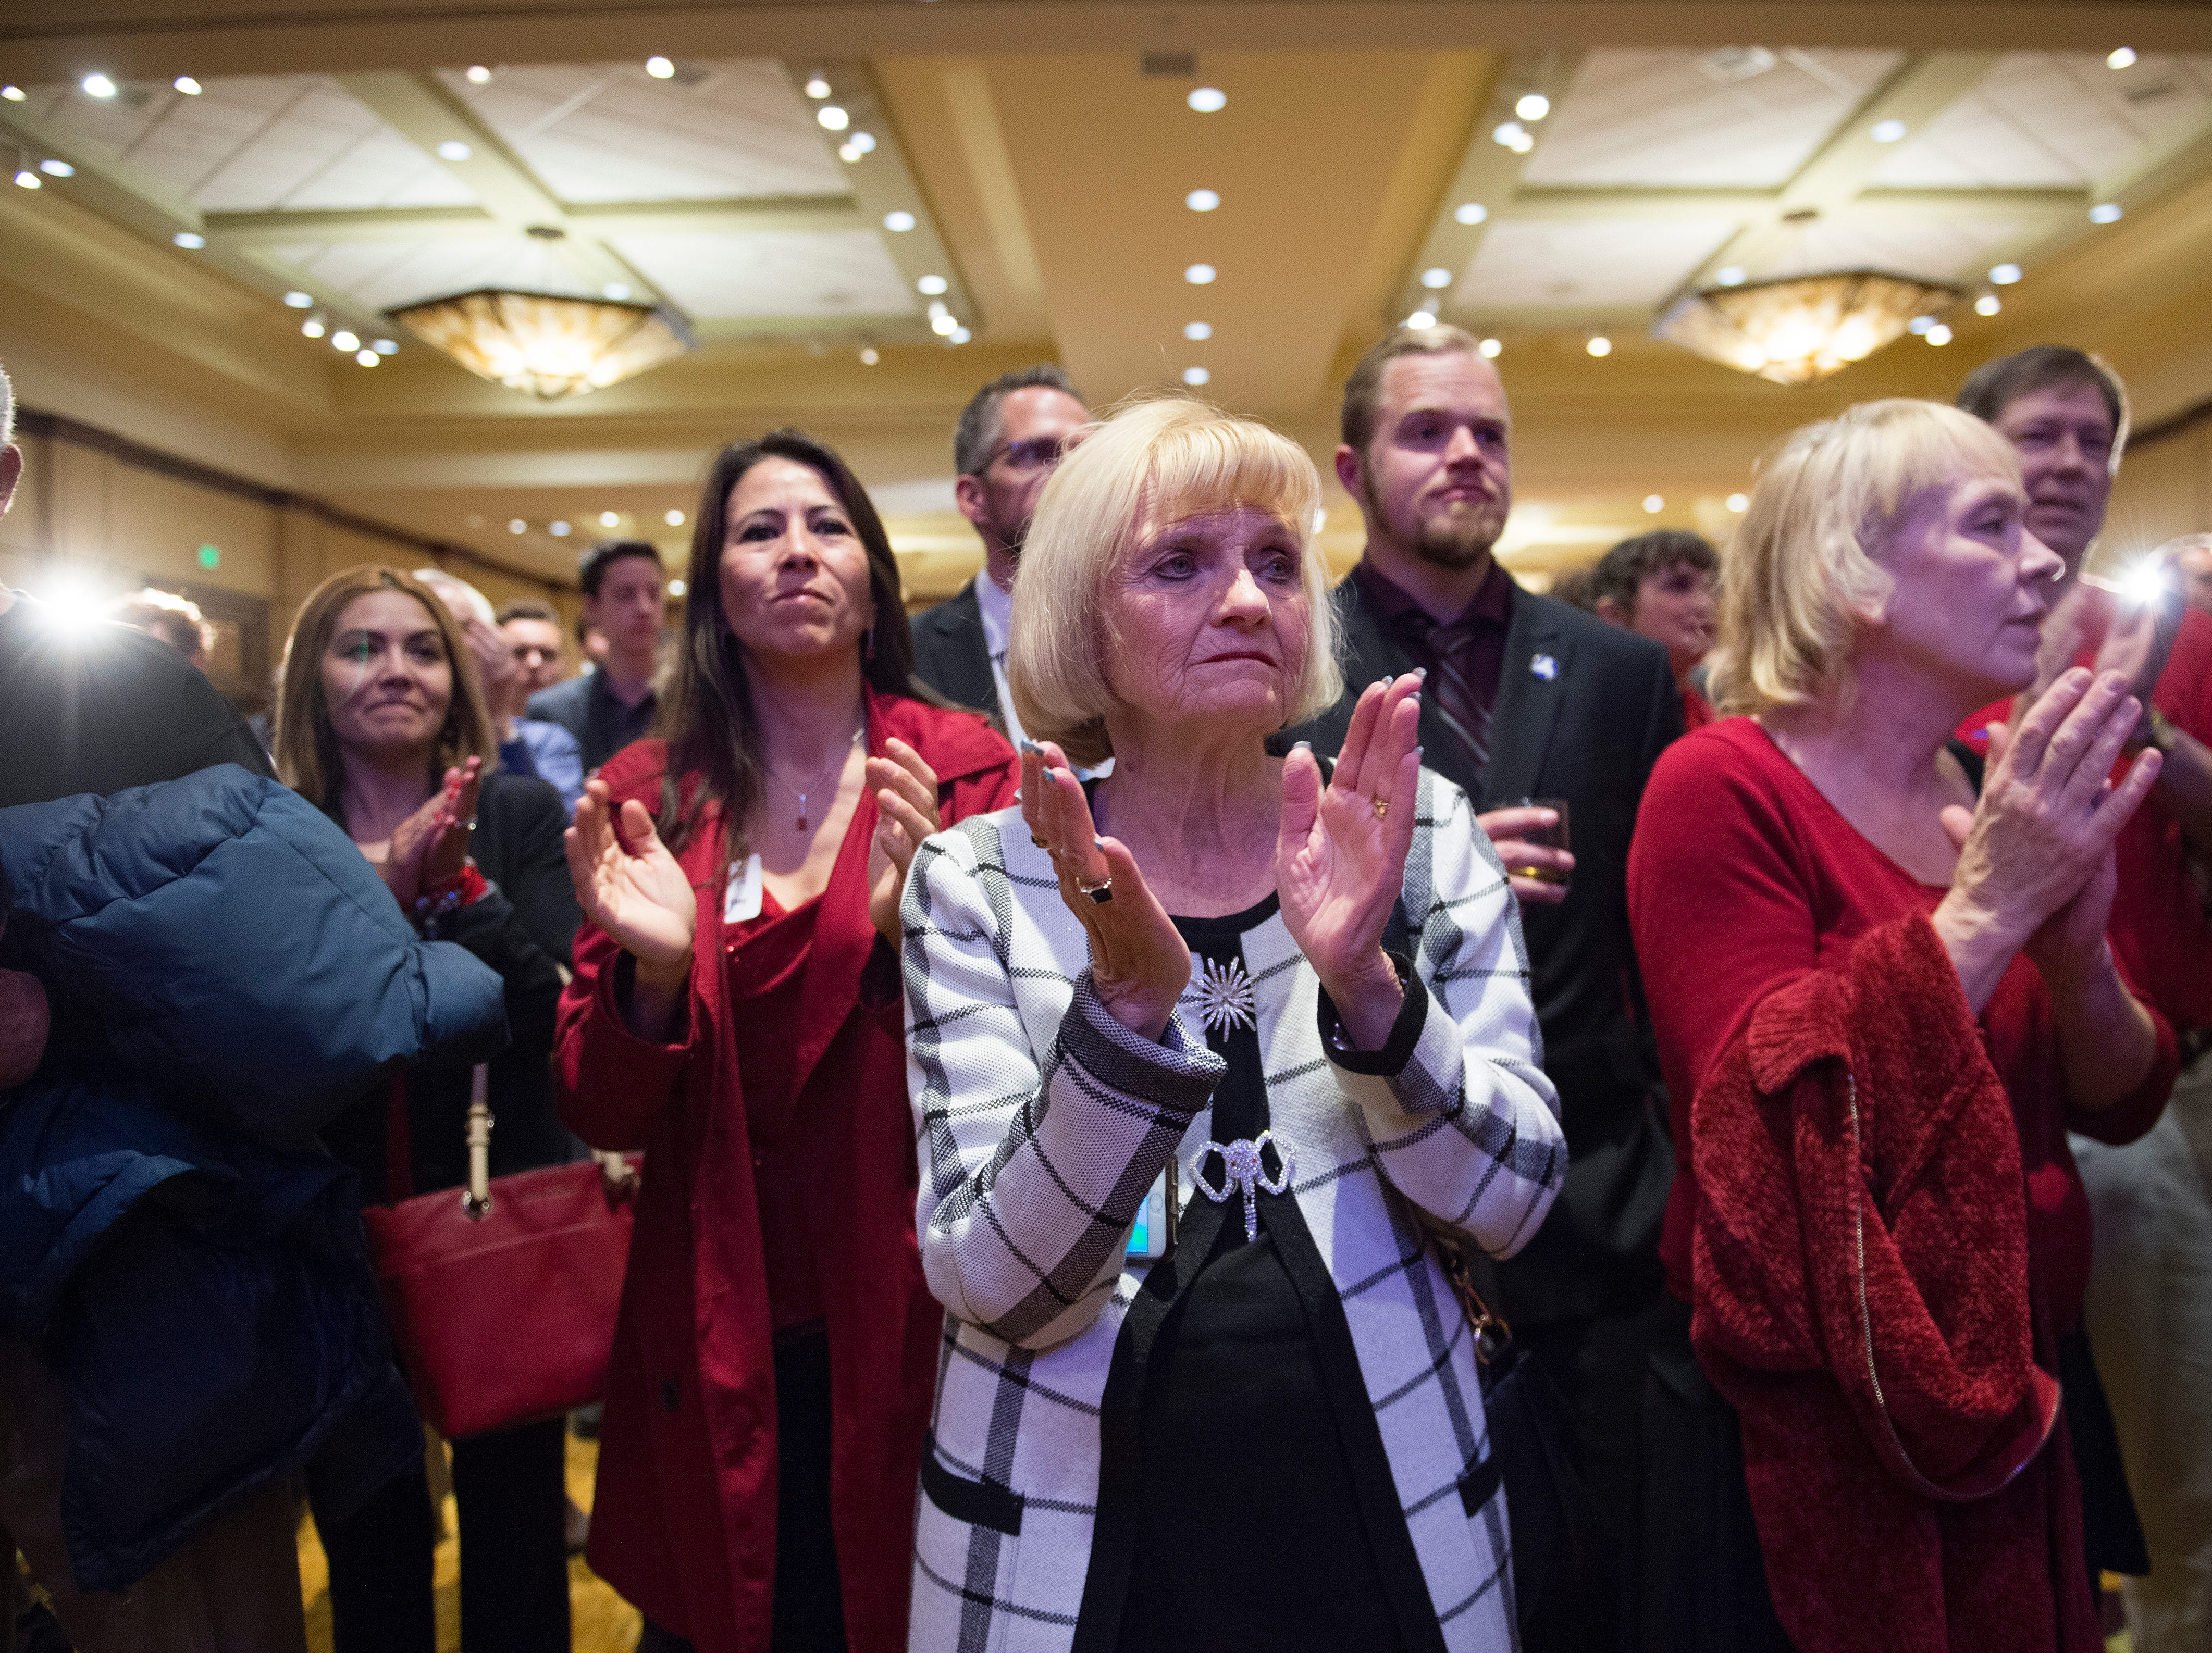 A crowd of supporters applaud after Republican candidate for Colorado governor Walker Stapleton gives a concession speech during a Colorado GOP watch party at the Denver Marriott South at Park Meadows in Lone Tree on Election Day, Tuesday, November 6, 2018.